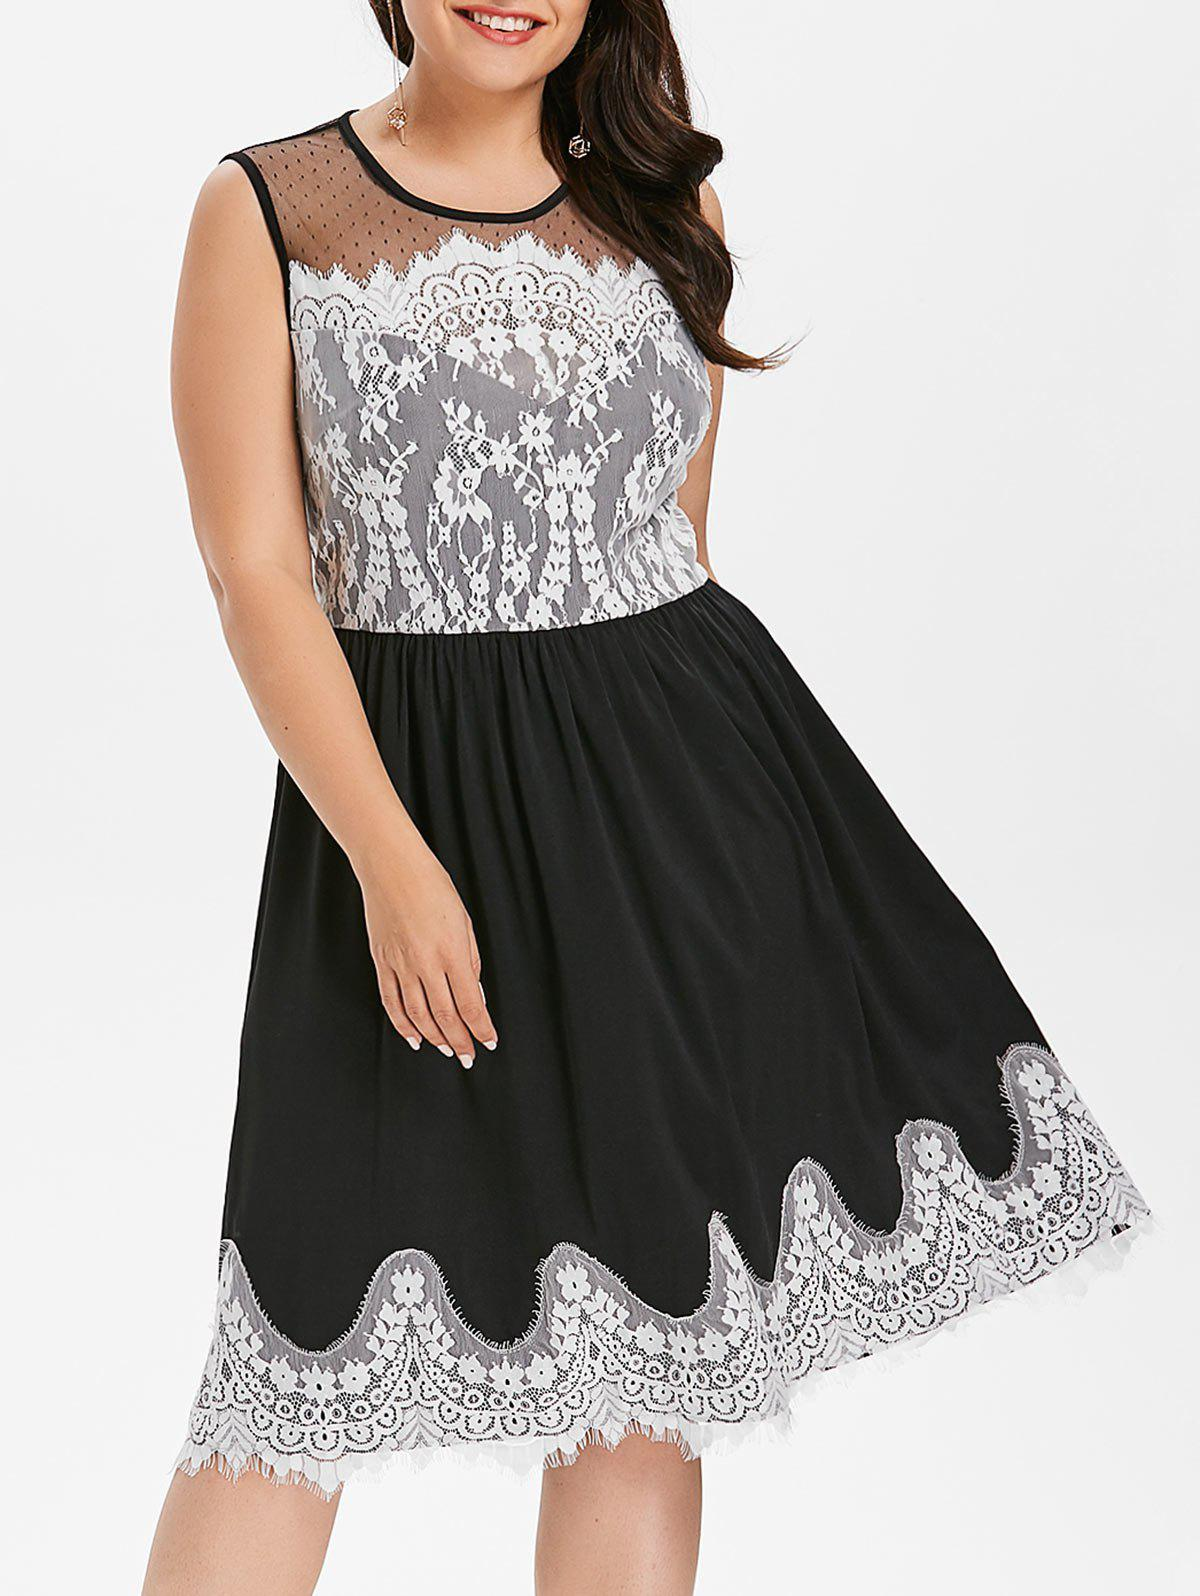 New Plus Size Sheer Yoke Eyelash Lace Trim Dress